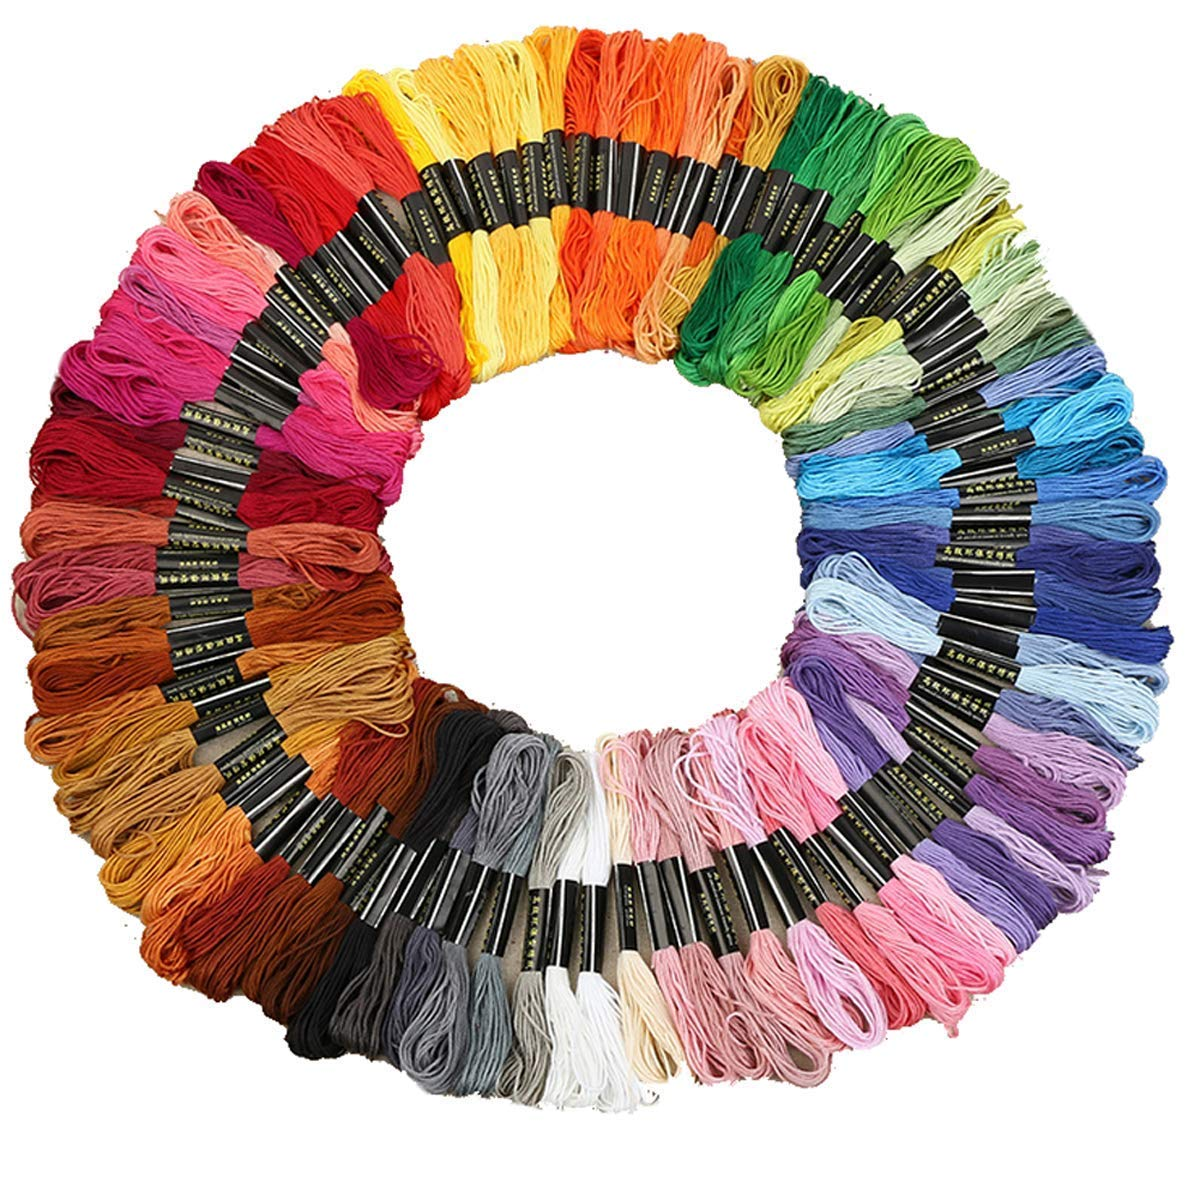 Aprince Cross Stitch Floss 100 Skeins Cotton Embroidery Thread DIY Rainbow Color Sewing Threads Friendship Bracelet Strings